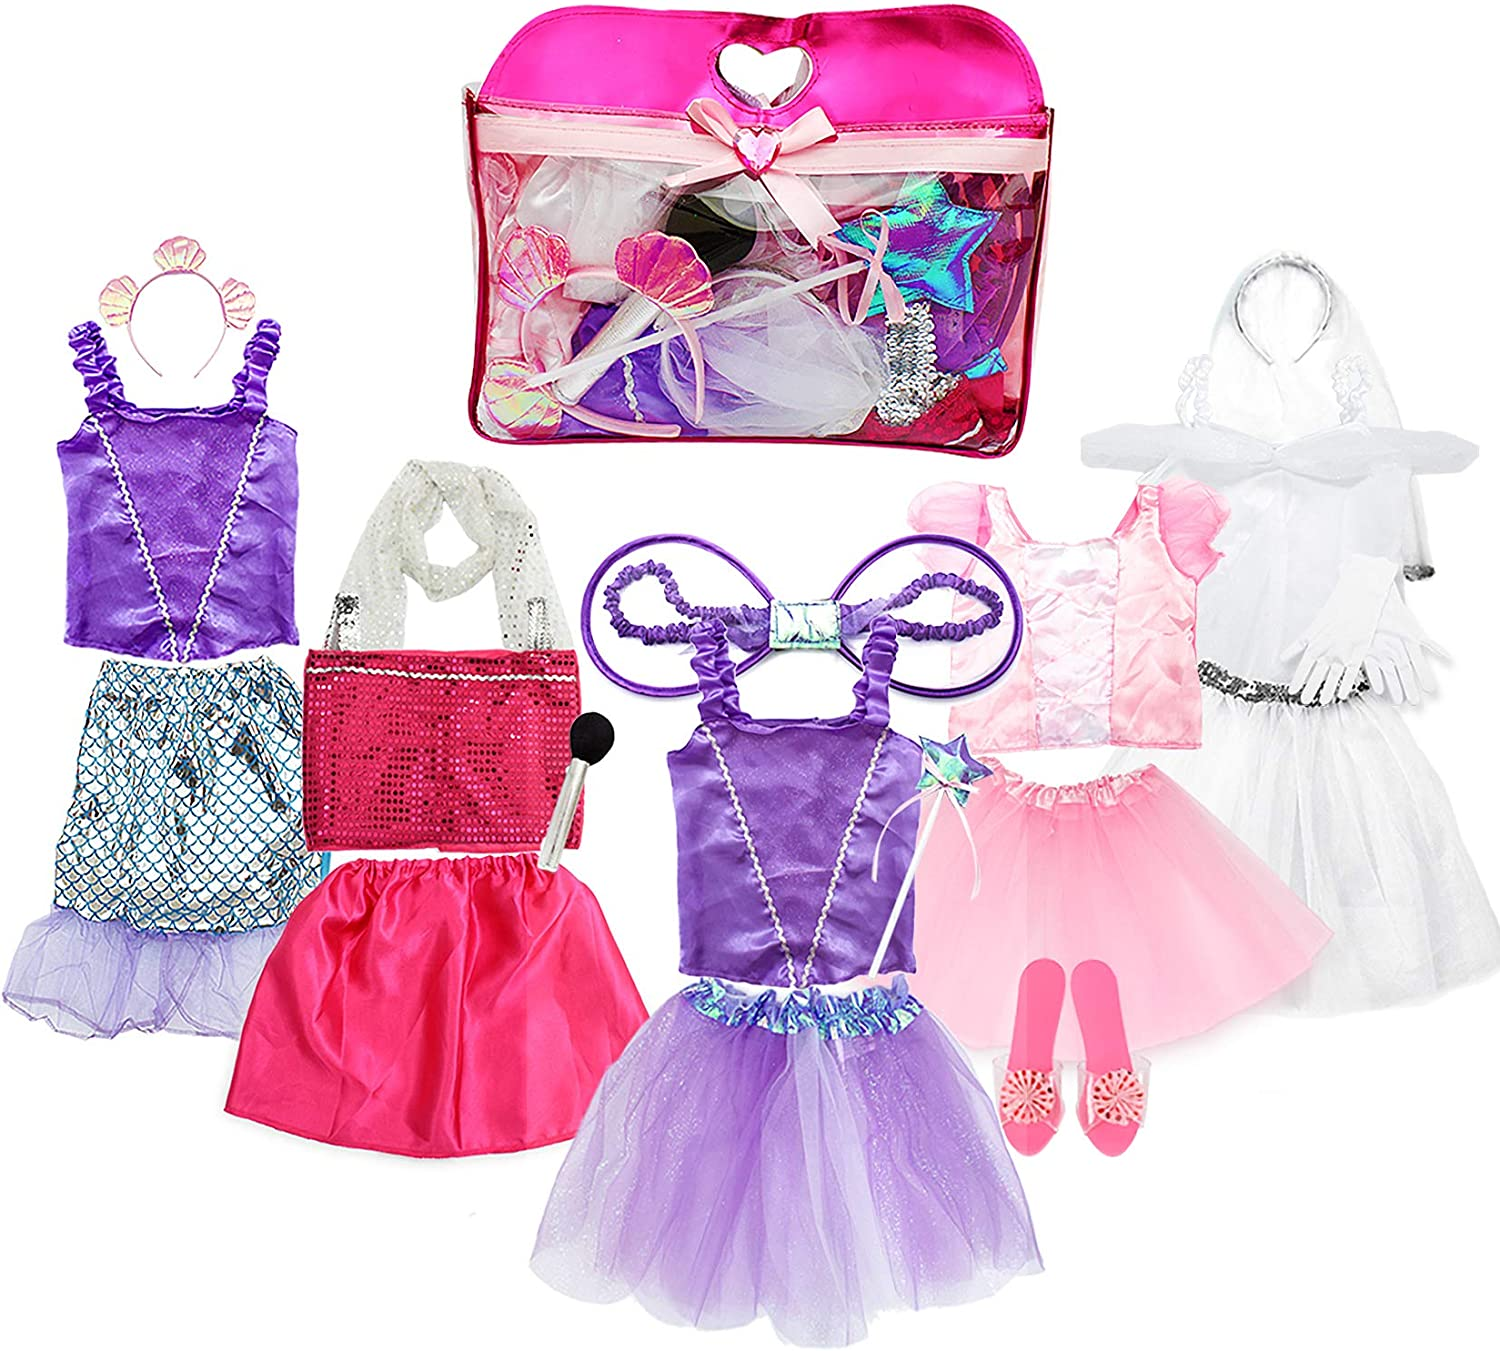 Toiijoy Girls Dress up Costume Set Princess,Fairy,Mermaid,Bride,Pop Star  Costume for Little Girls Toddler Ages 5-5yrs